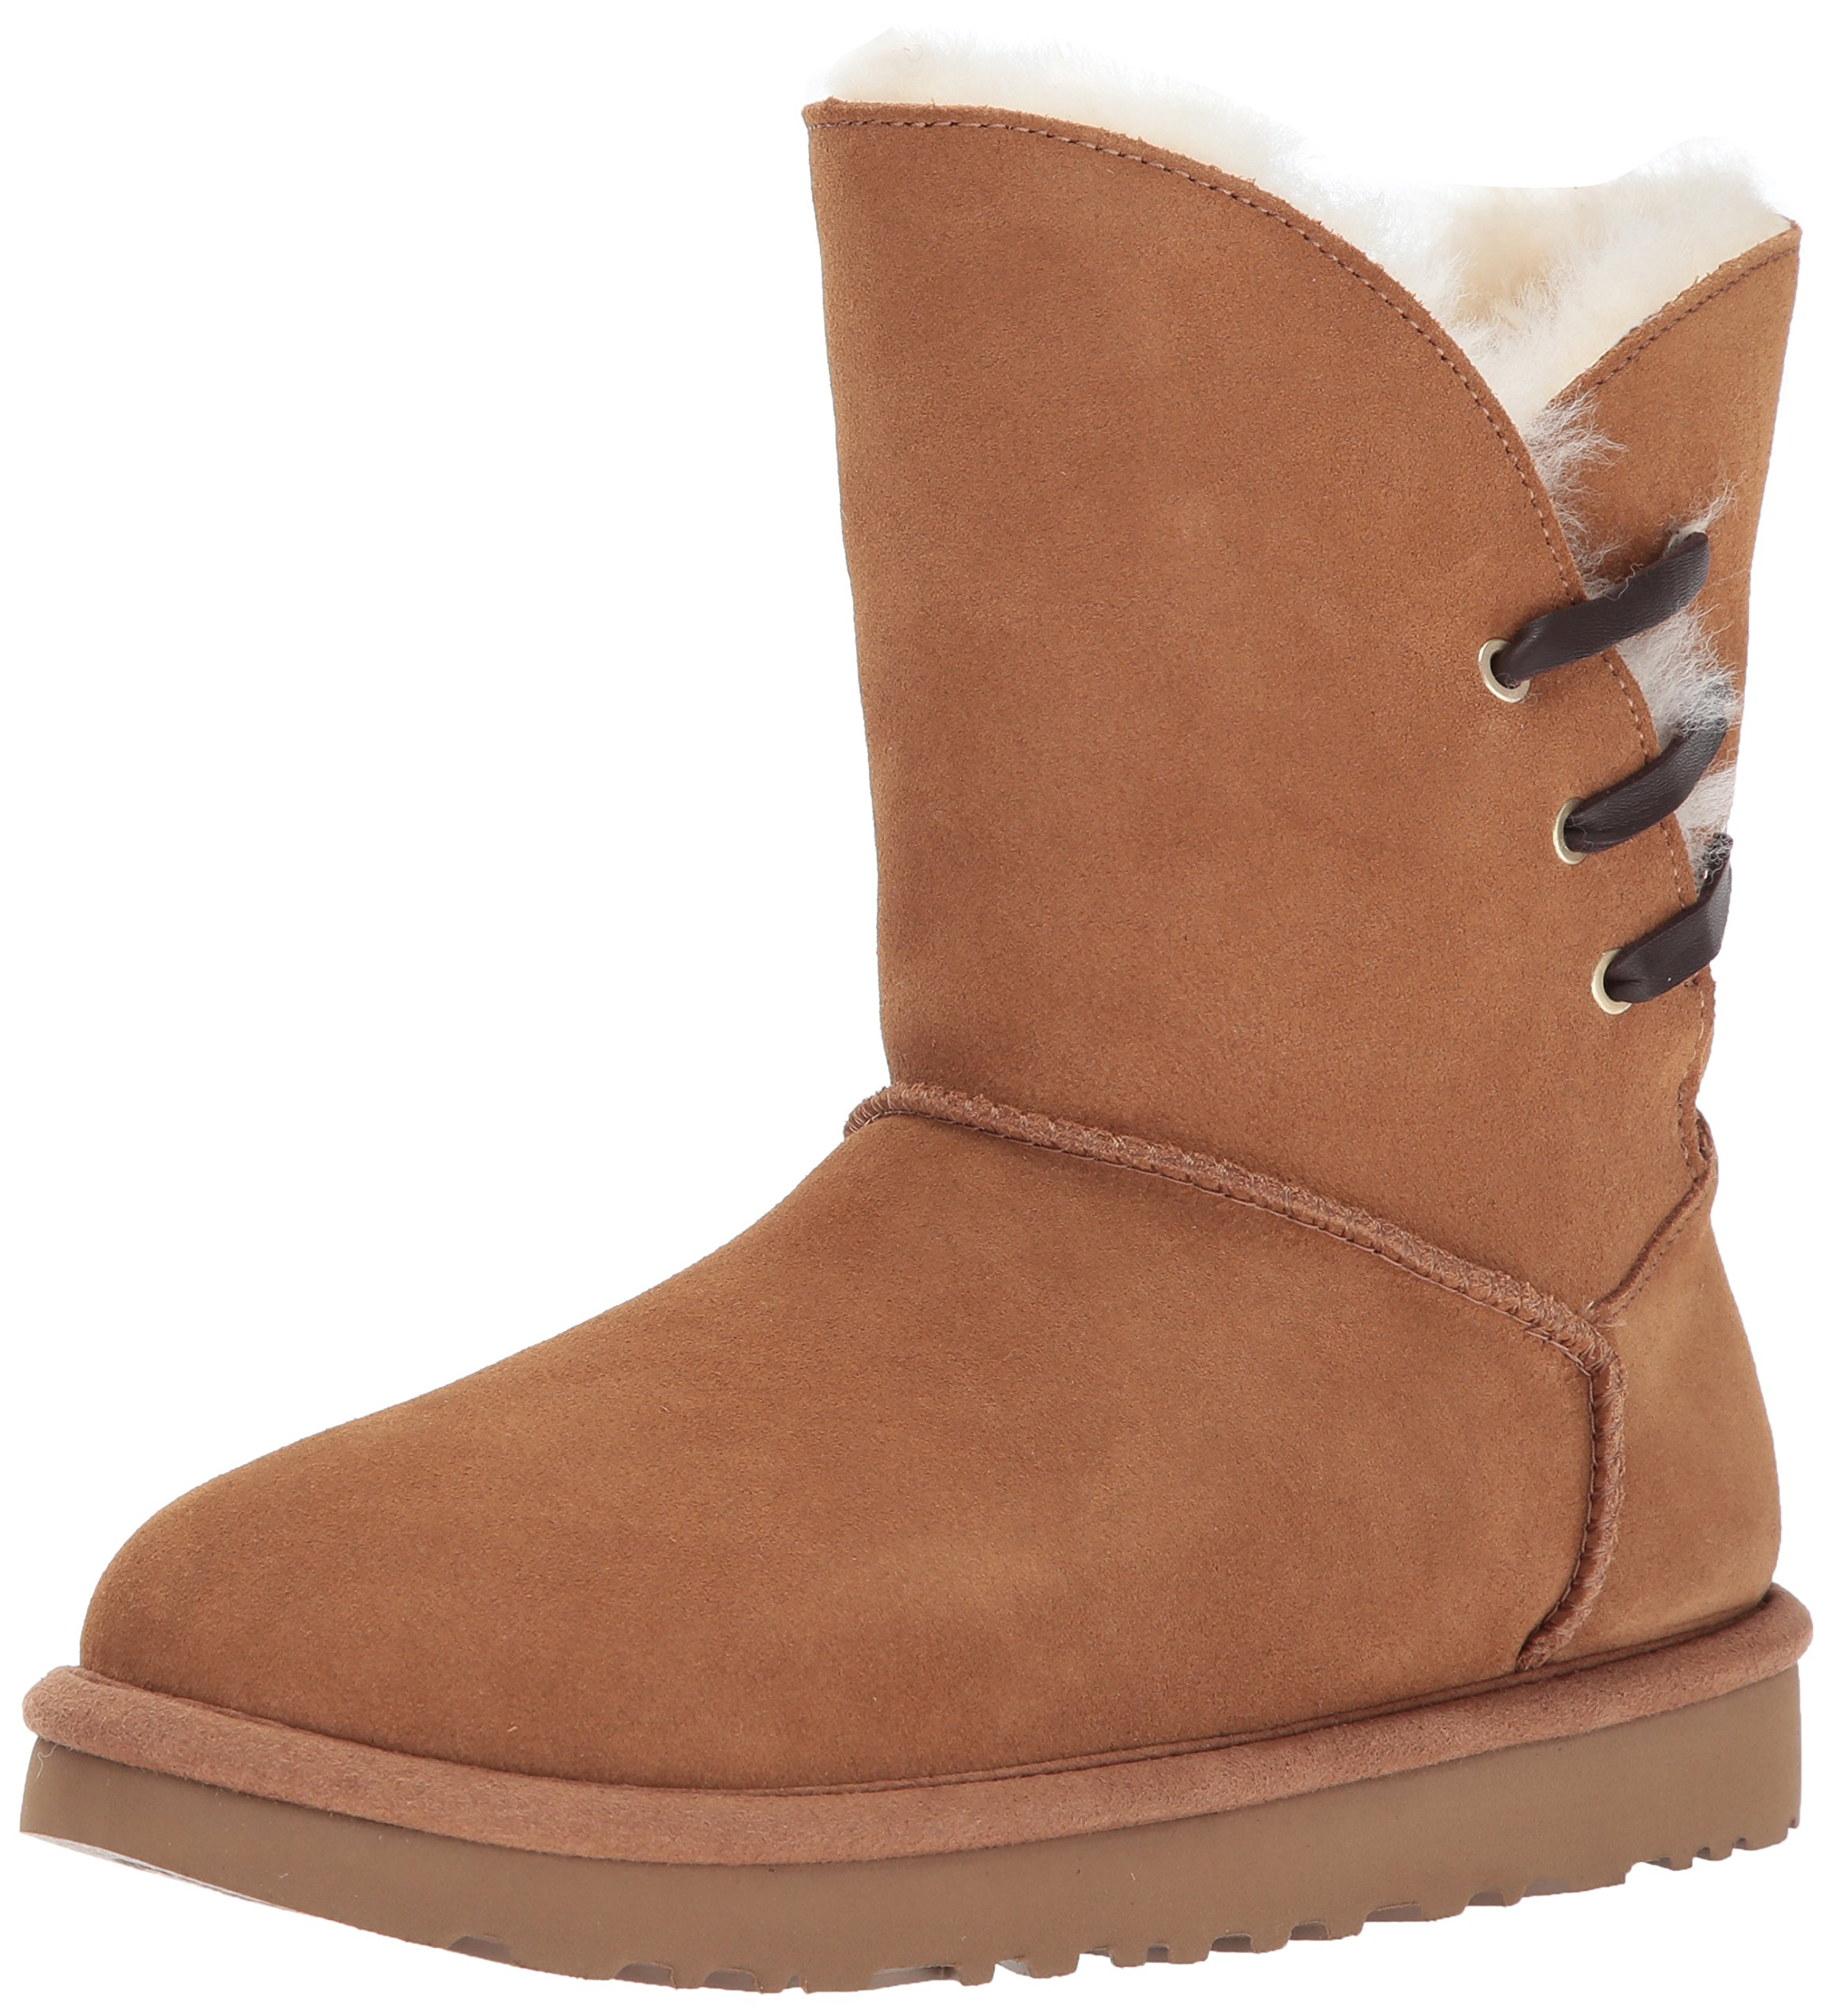 UGG Women's Constantine Slouch Boot, Chestnut, 6 M US